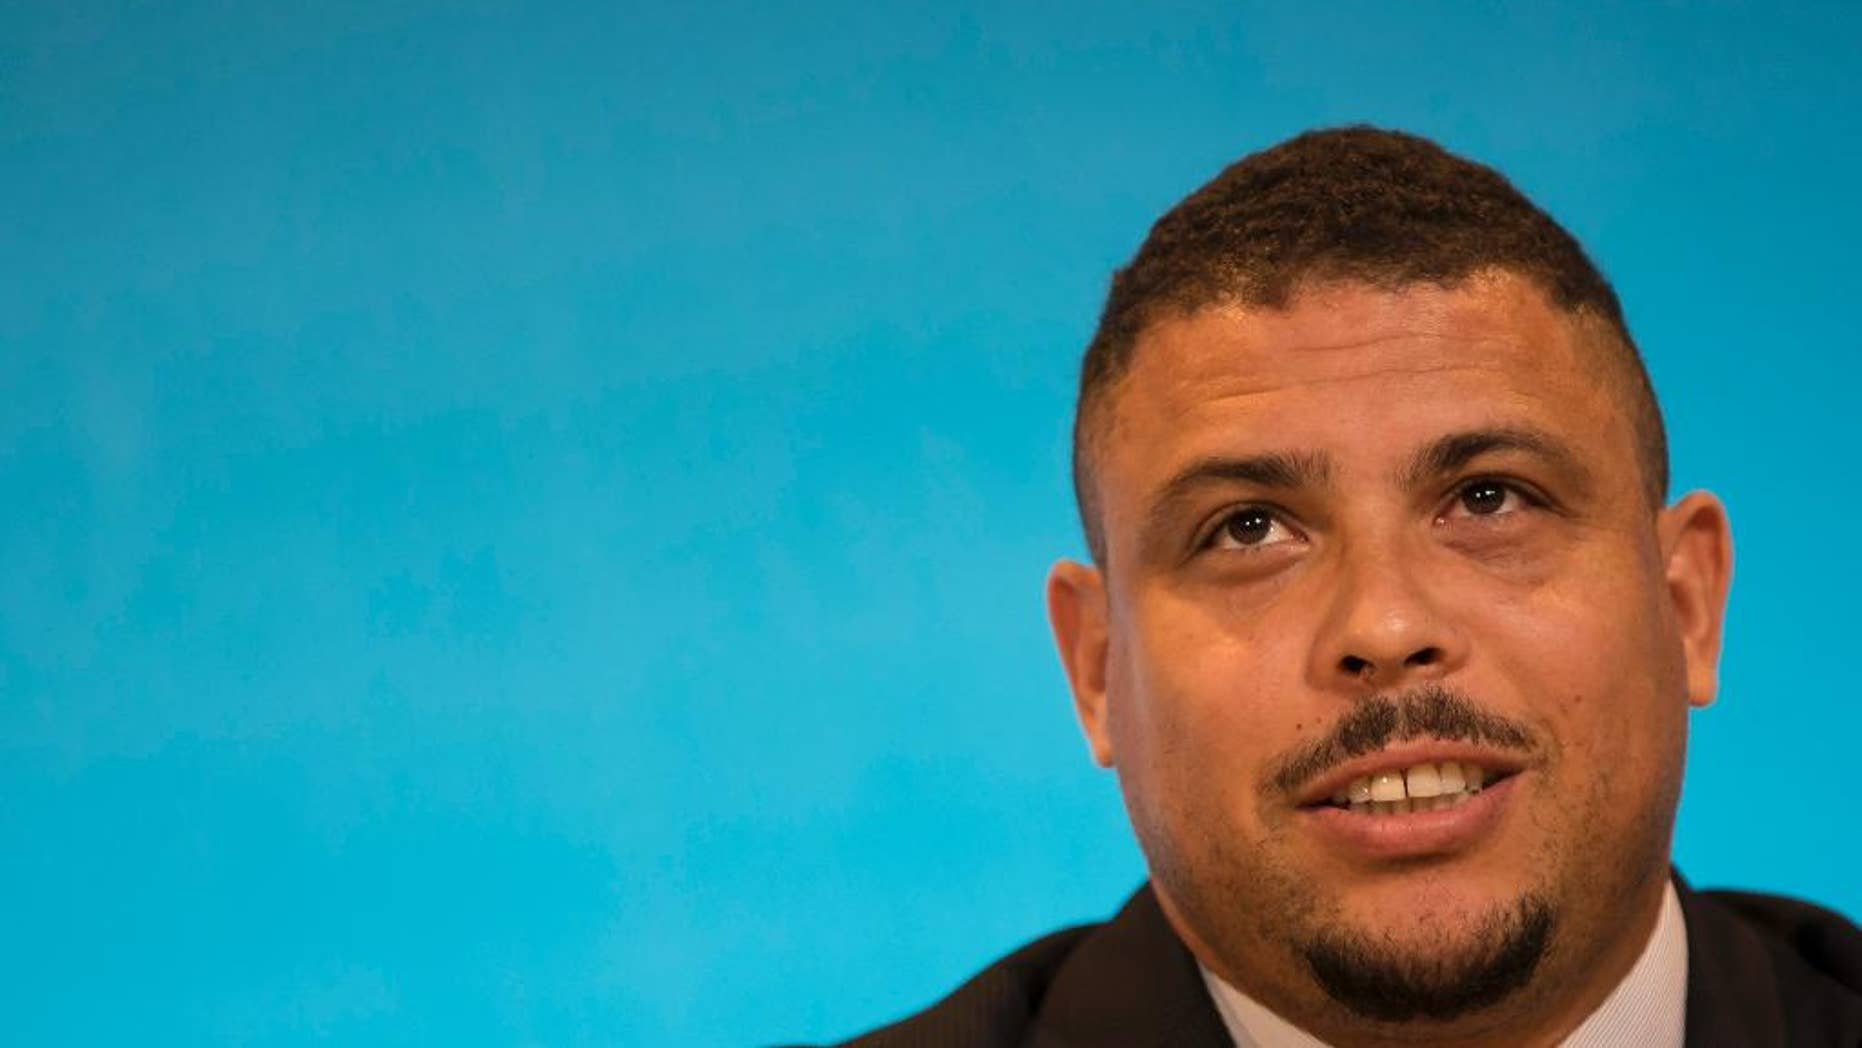 Ronaldo, Brazil's former soccer player and a member of the local organizing committee for the 2014 World Cup, talks during a news conference at the Maracana stadium in Rio de Janeiro, Brazil, Thursday, March 27, 2014. (AP Photo/Felipe Dana)